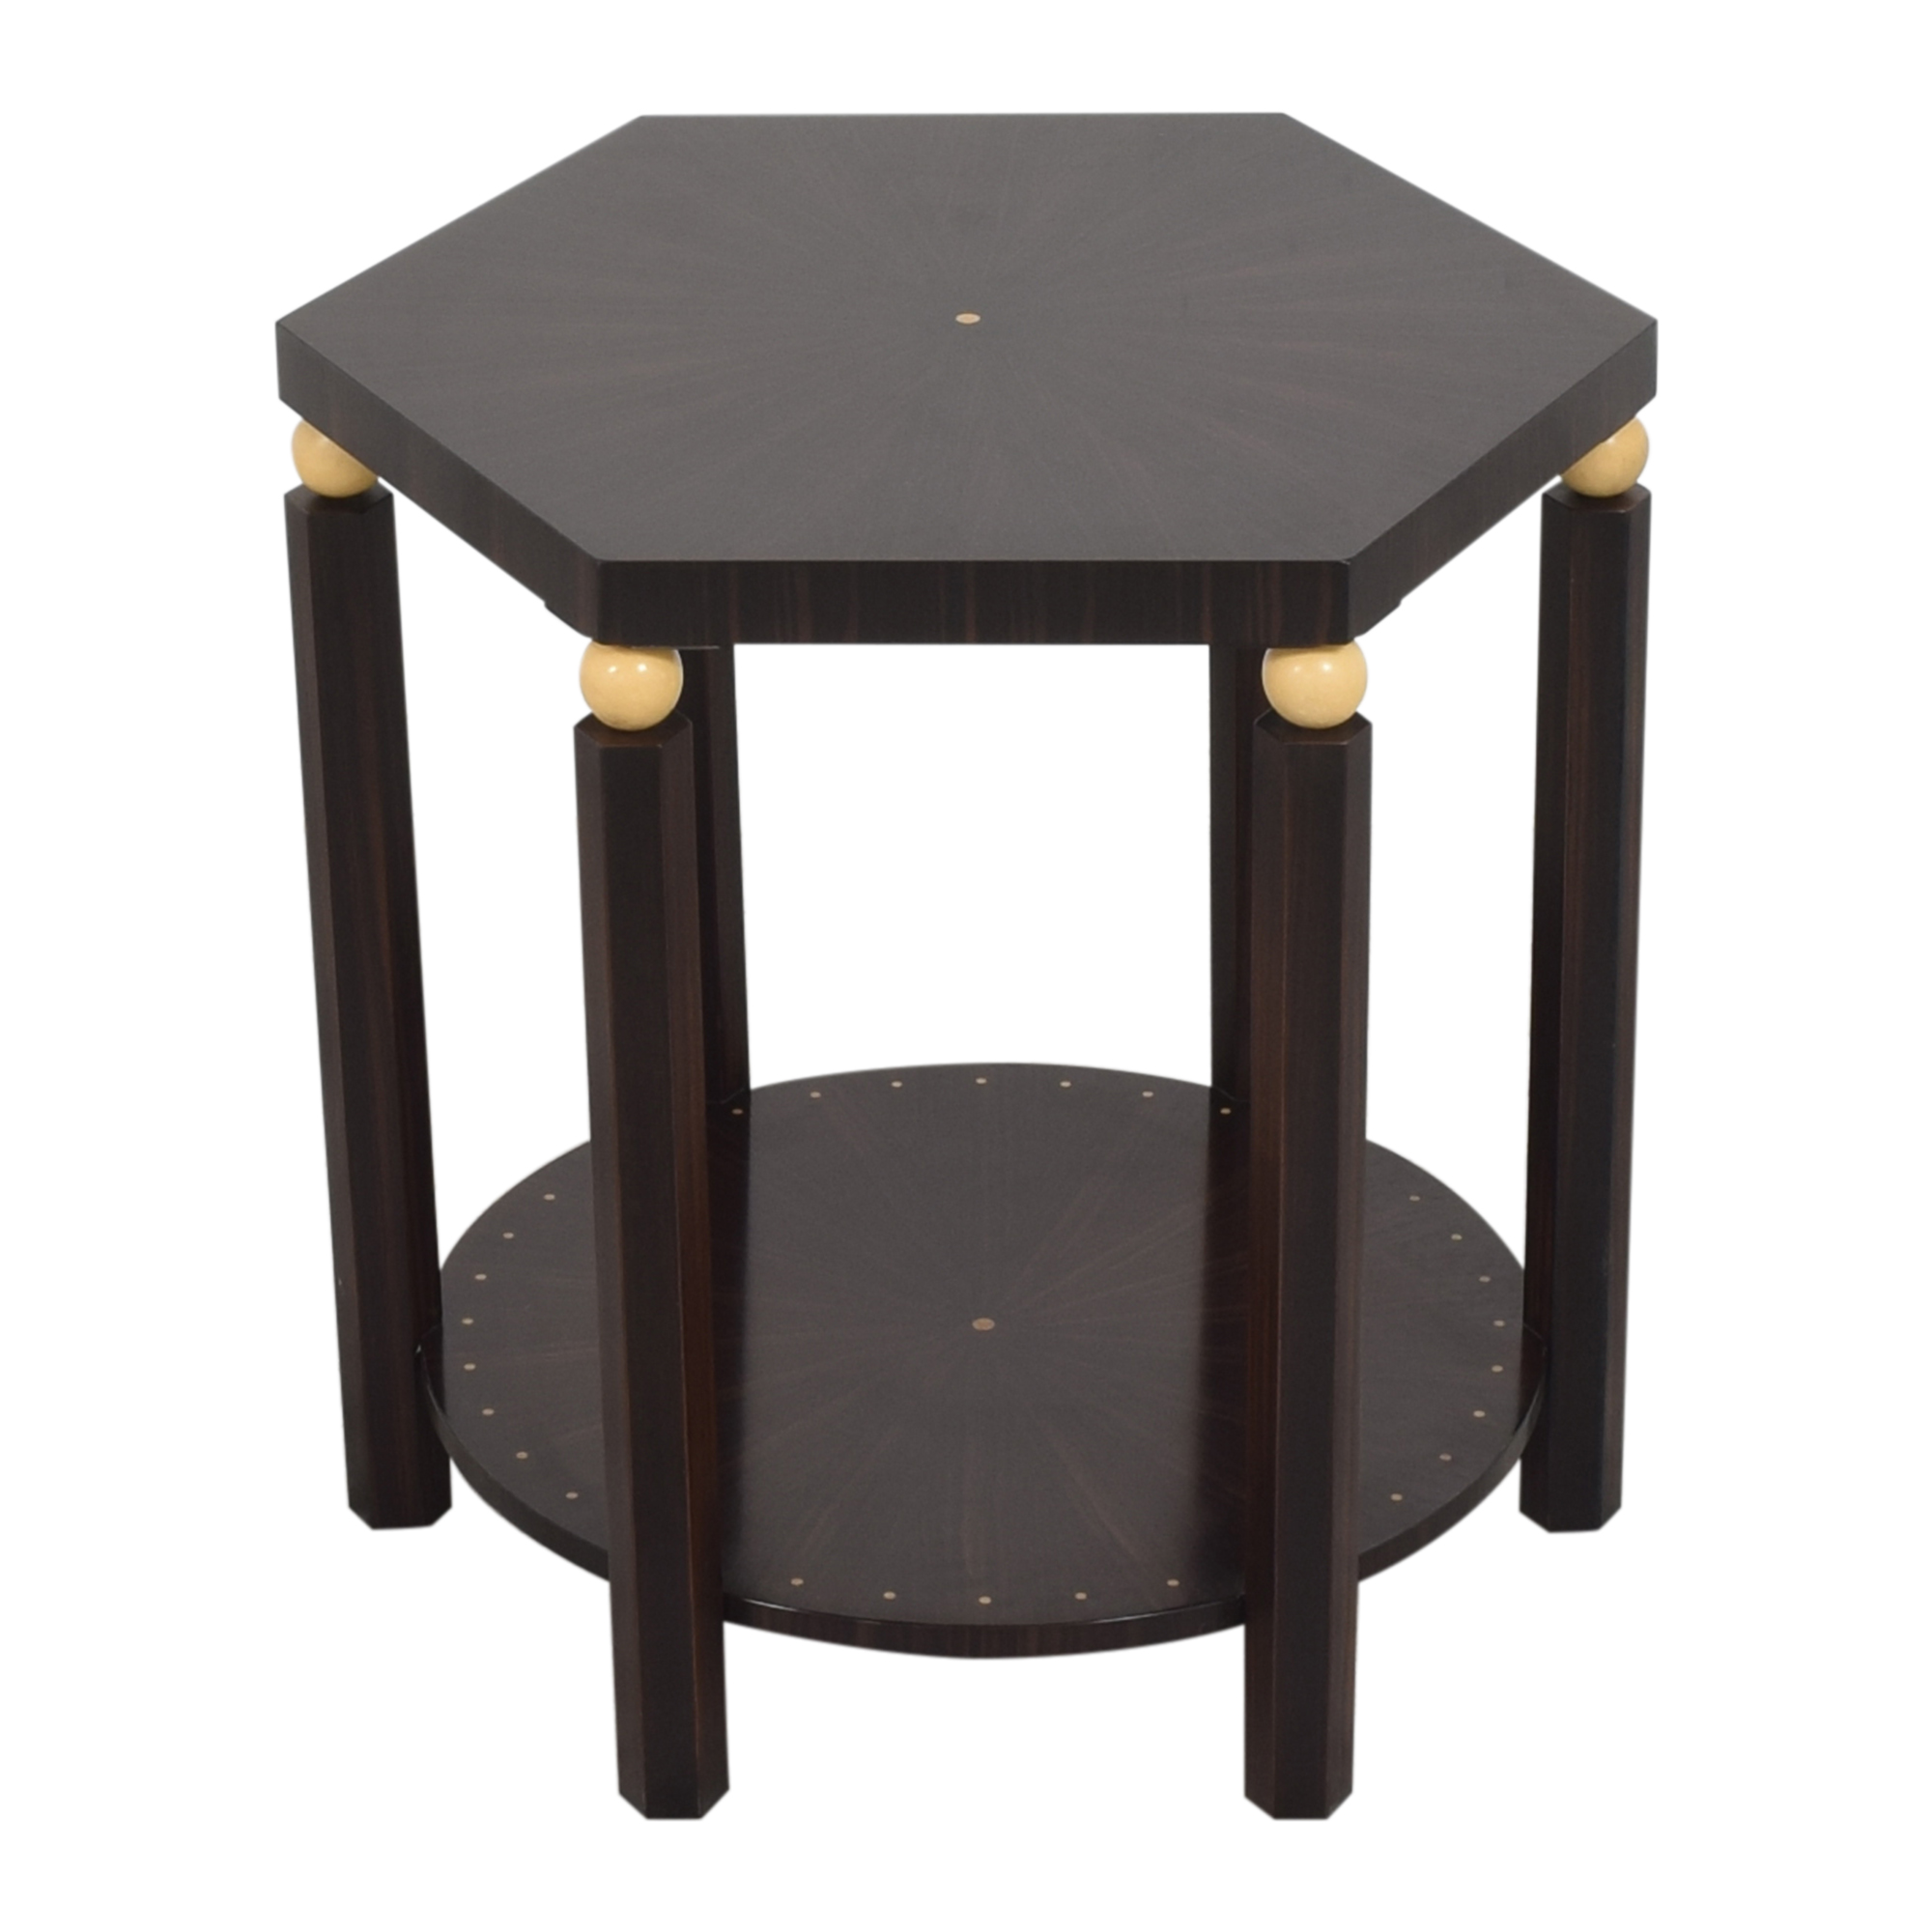 EJ Victor EJ Victor Hexagonal Side Table second hand